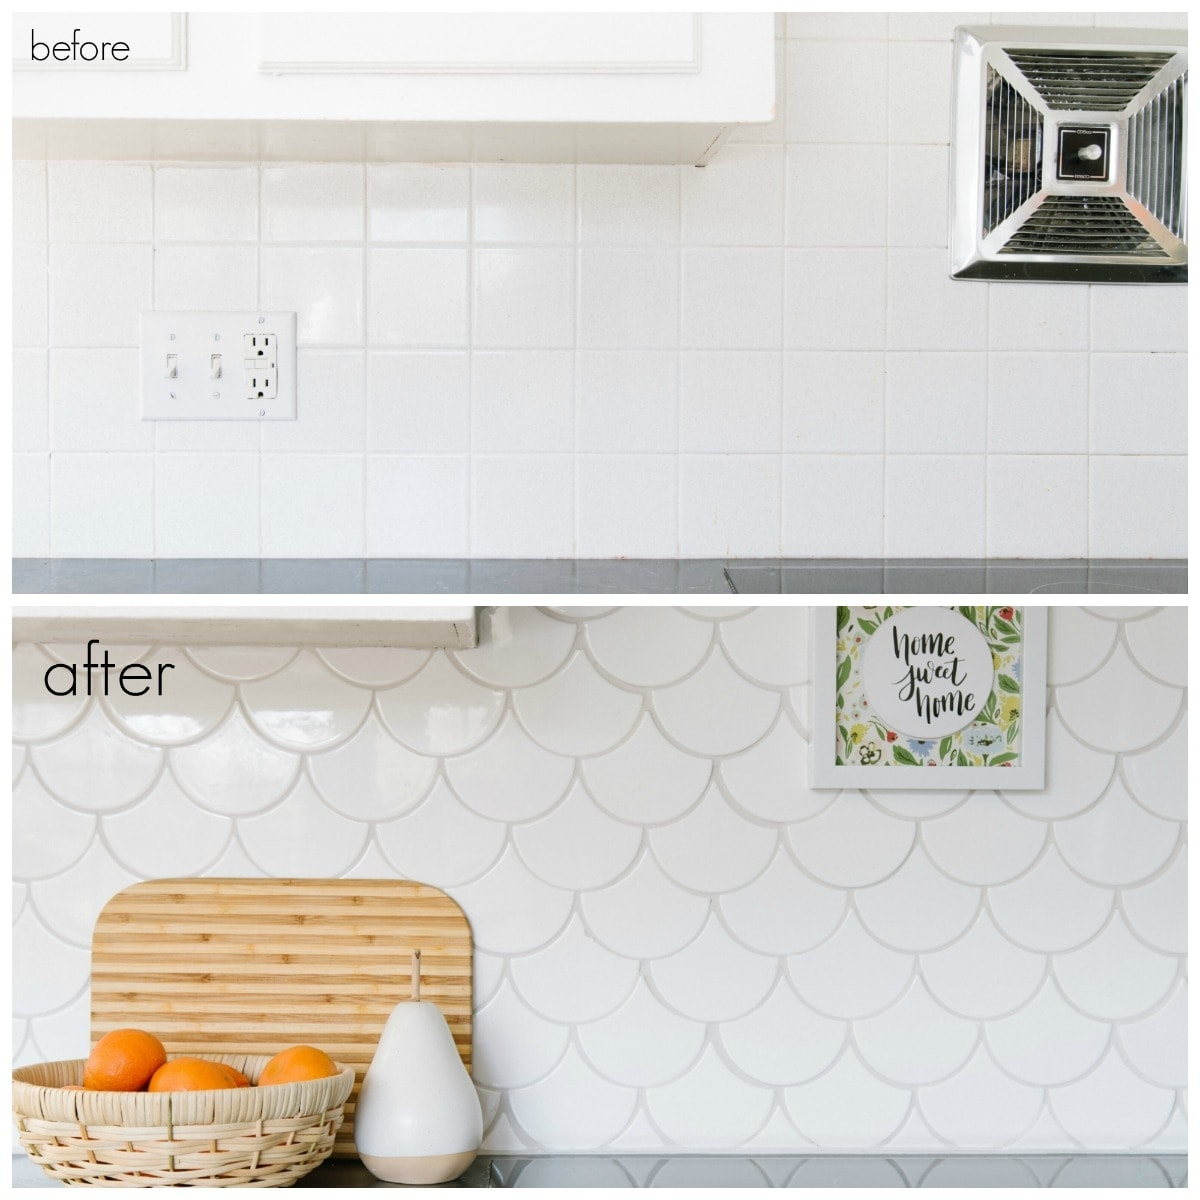 backsplash tile comparison of before and after